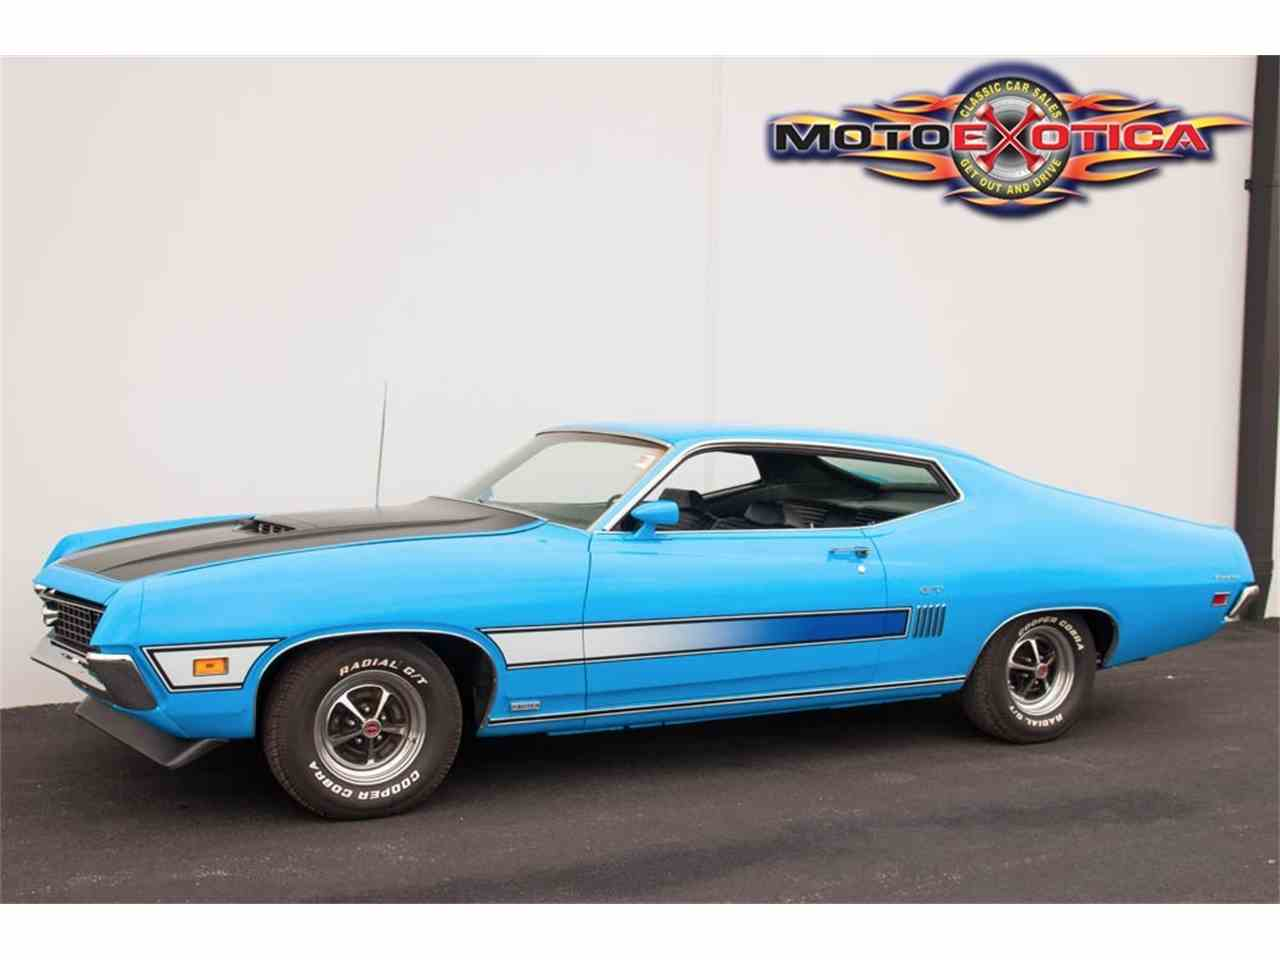 porsche of arlington with 1970 Ford Torino Gt Fastback For Sale In St Louis on Used Audi Q5 Va together with Current Nissan Incentives further 1970 Ford Torino Gt Fastback For Sale In St Louis likewise L Used 2002 Porsche 911 McKinney C3392 L33642 furthermore Maria En De Geboorteverhalen I Bij Mat.